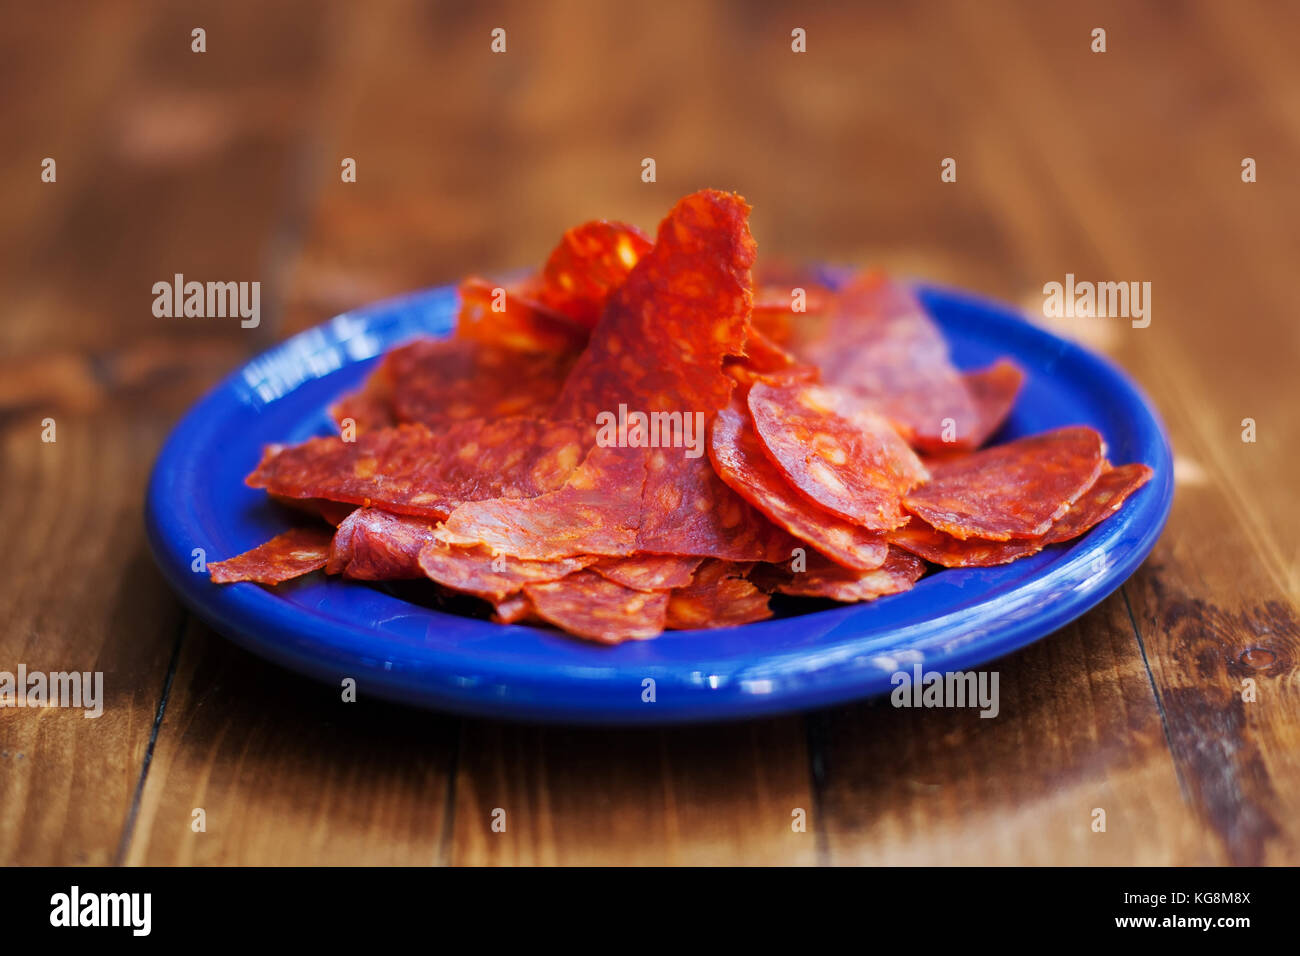 Spanish cuisine tapas Chorizo sausage slices in blue plate. Textured smoked spicy pork meat. Close-up photo, soft - Stock Image